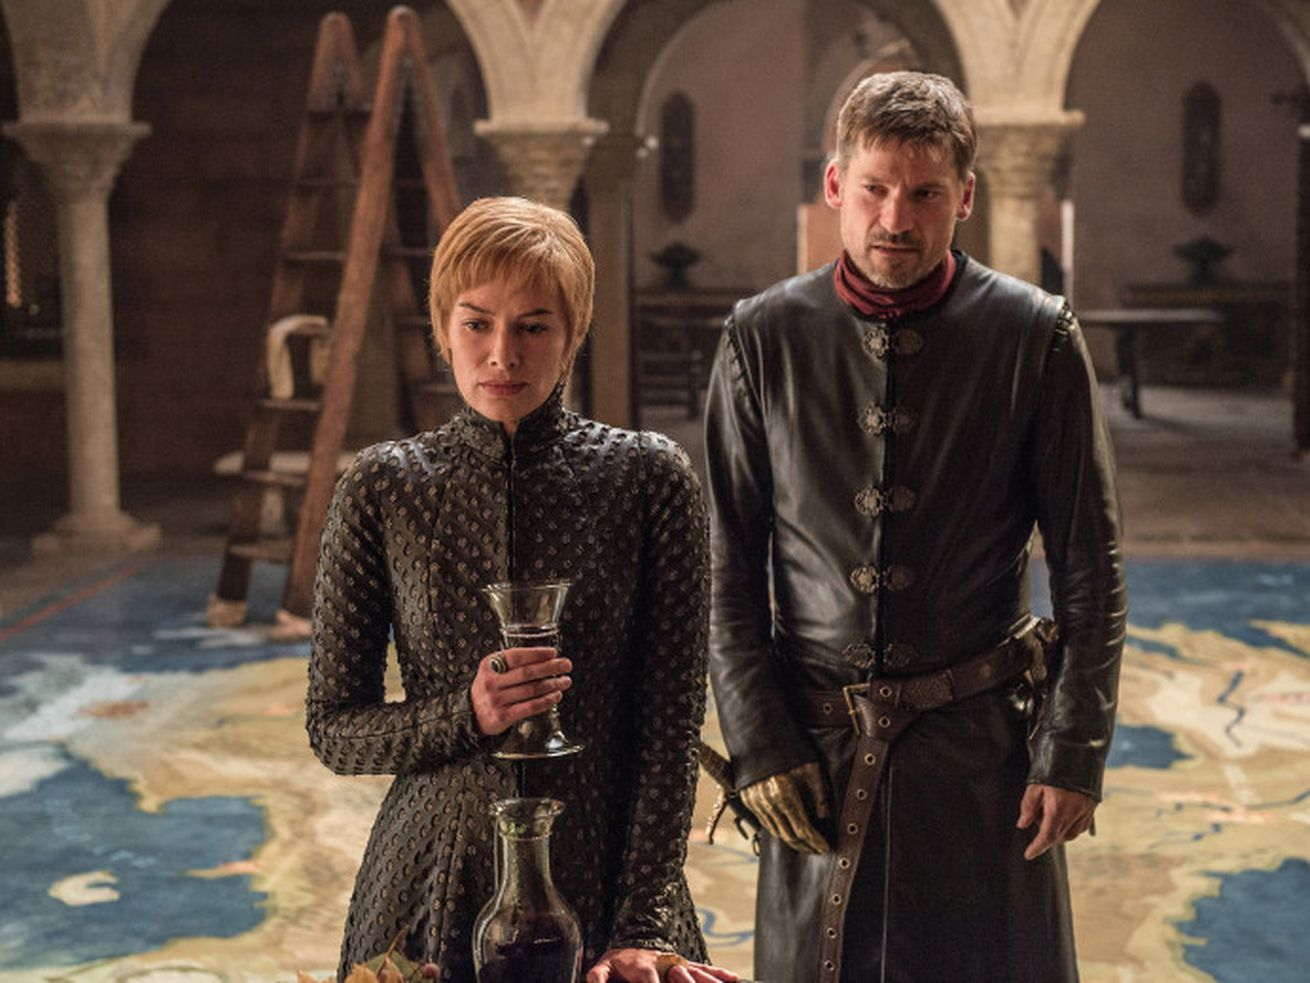 Jaime Lannister now fully sees through Cersei in <em>Game of Thrones</em> season eight.